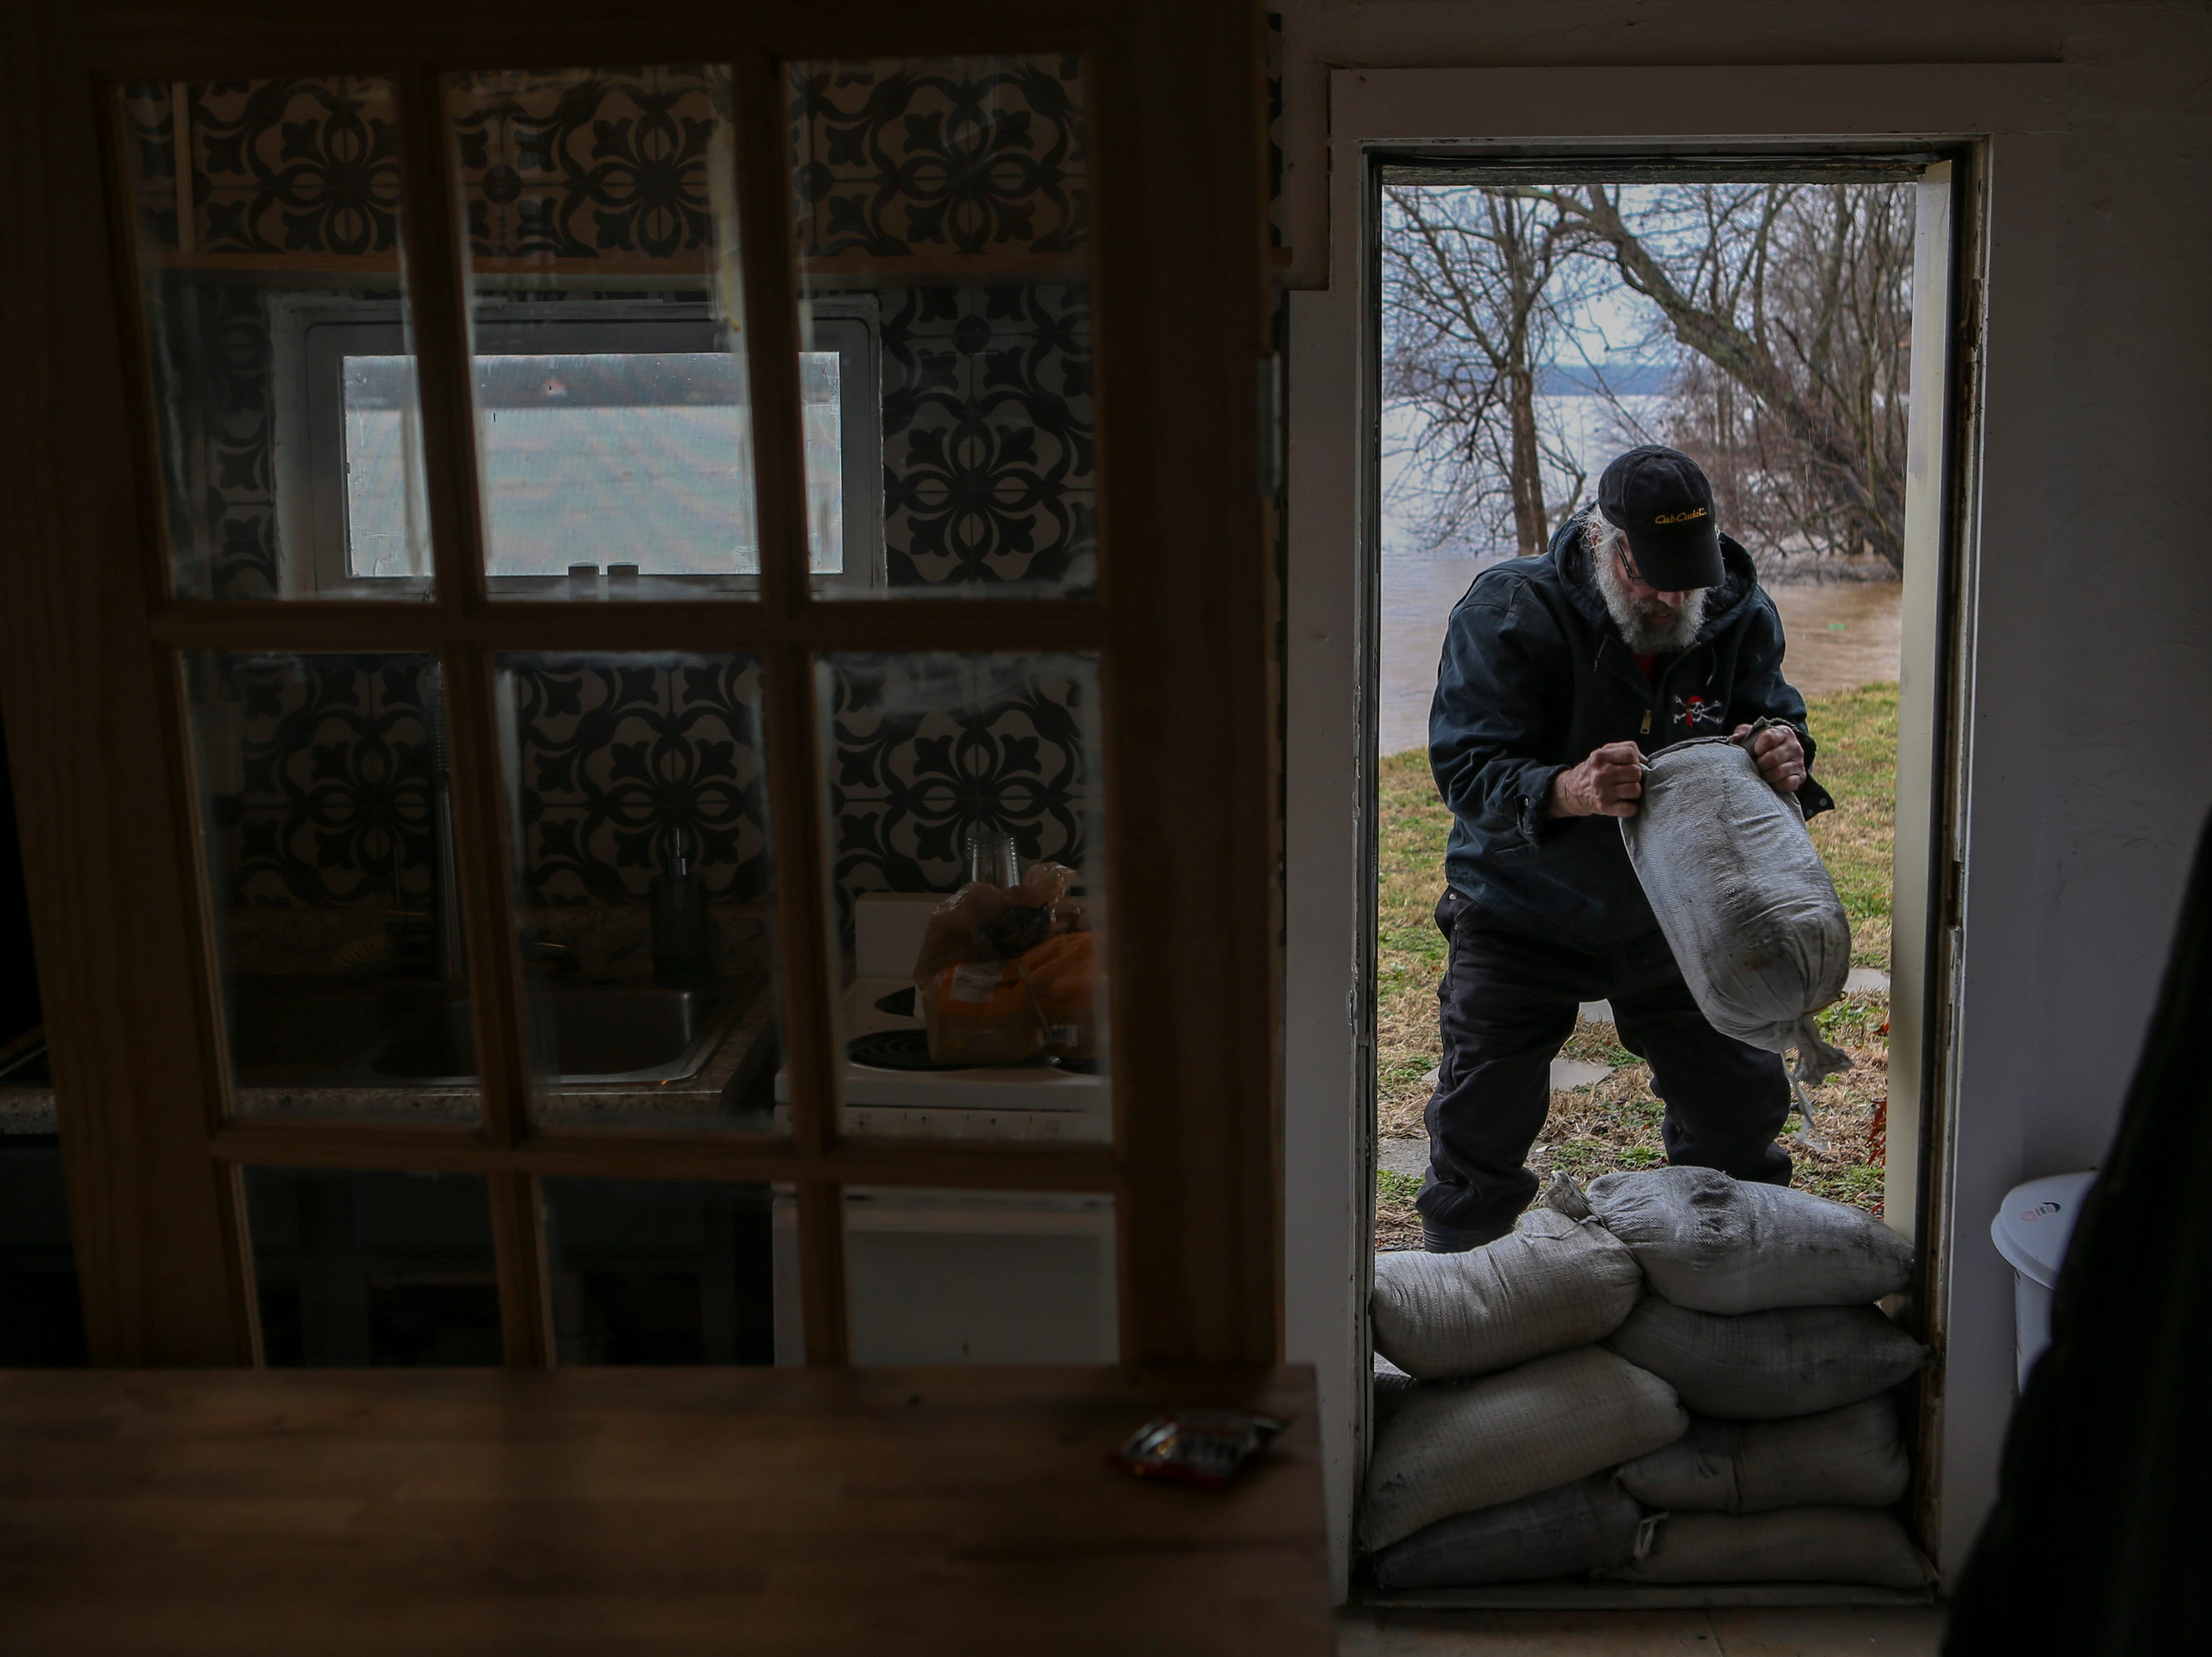 Tony Watterson stacks sandbags in a home's doorway in Utica, Ind. on Monday as the area braces for high river waters and flooding. Feb. 11, 2019